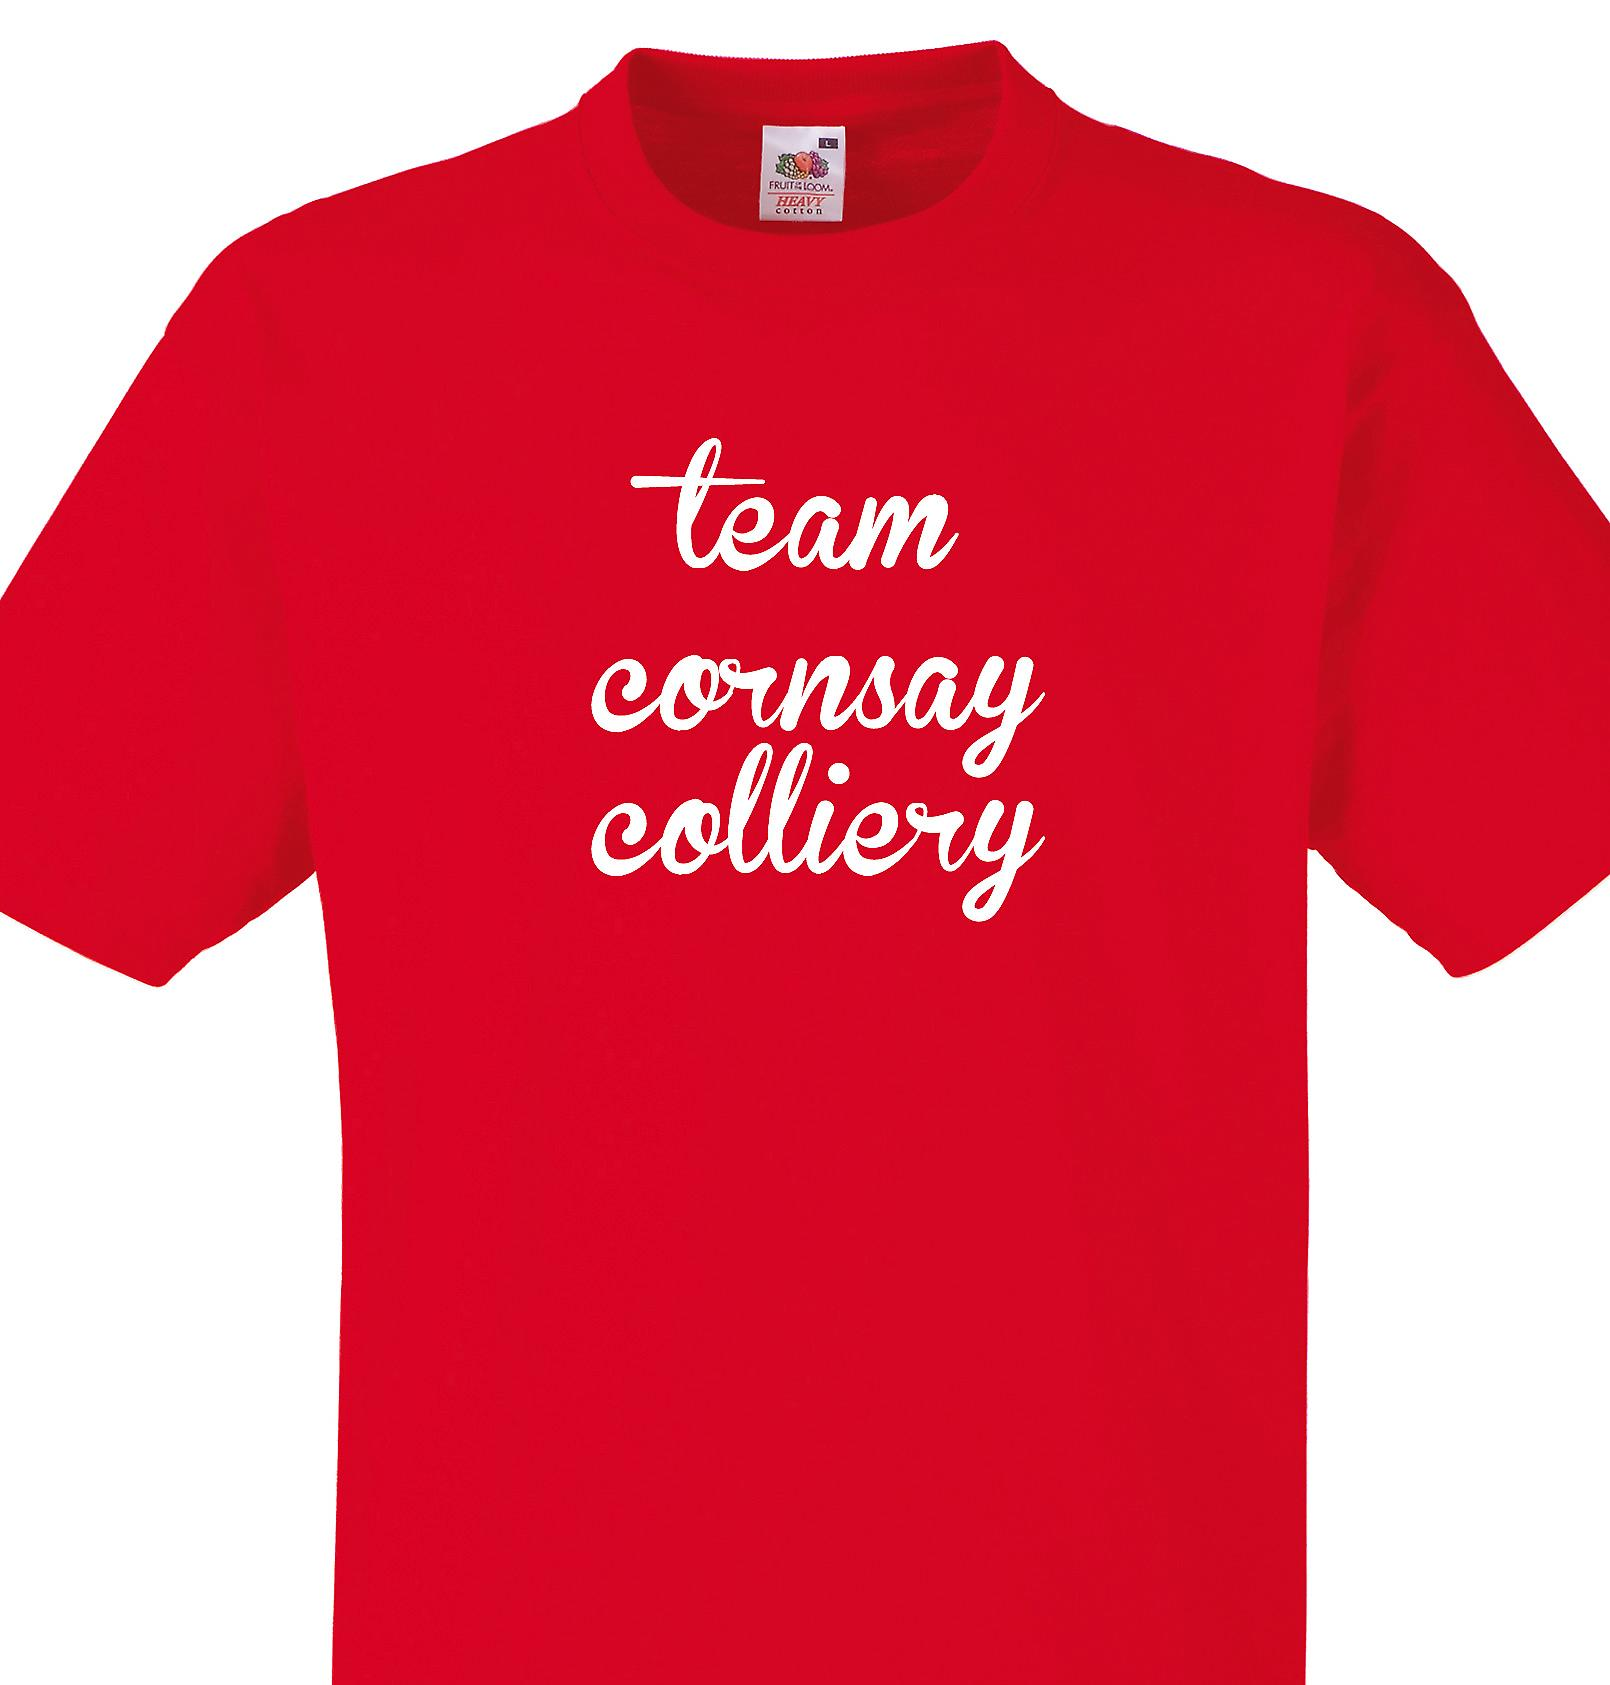 Team Cornsay colliery Red T shirt